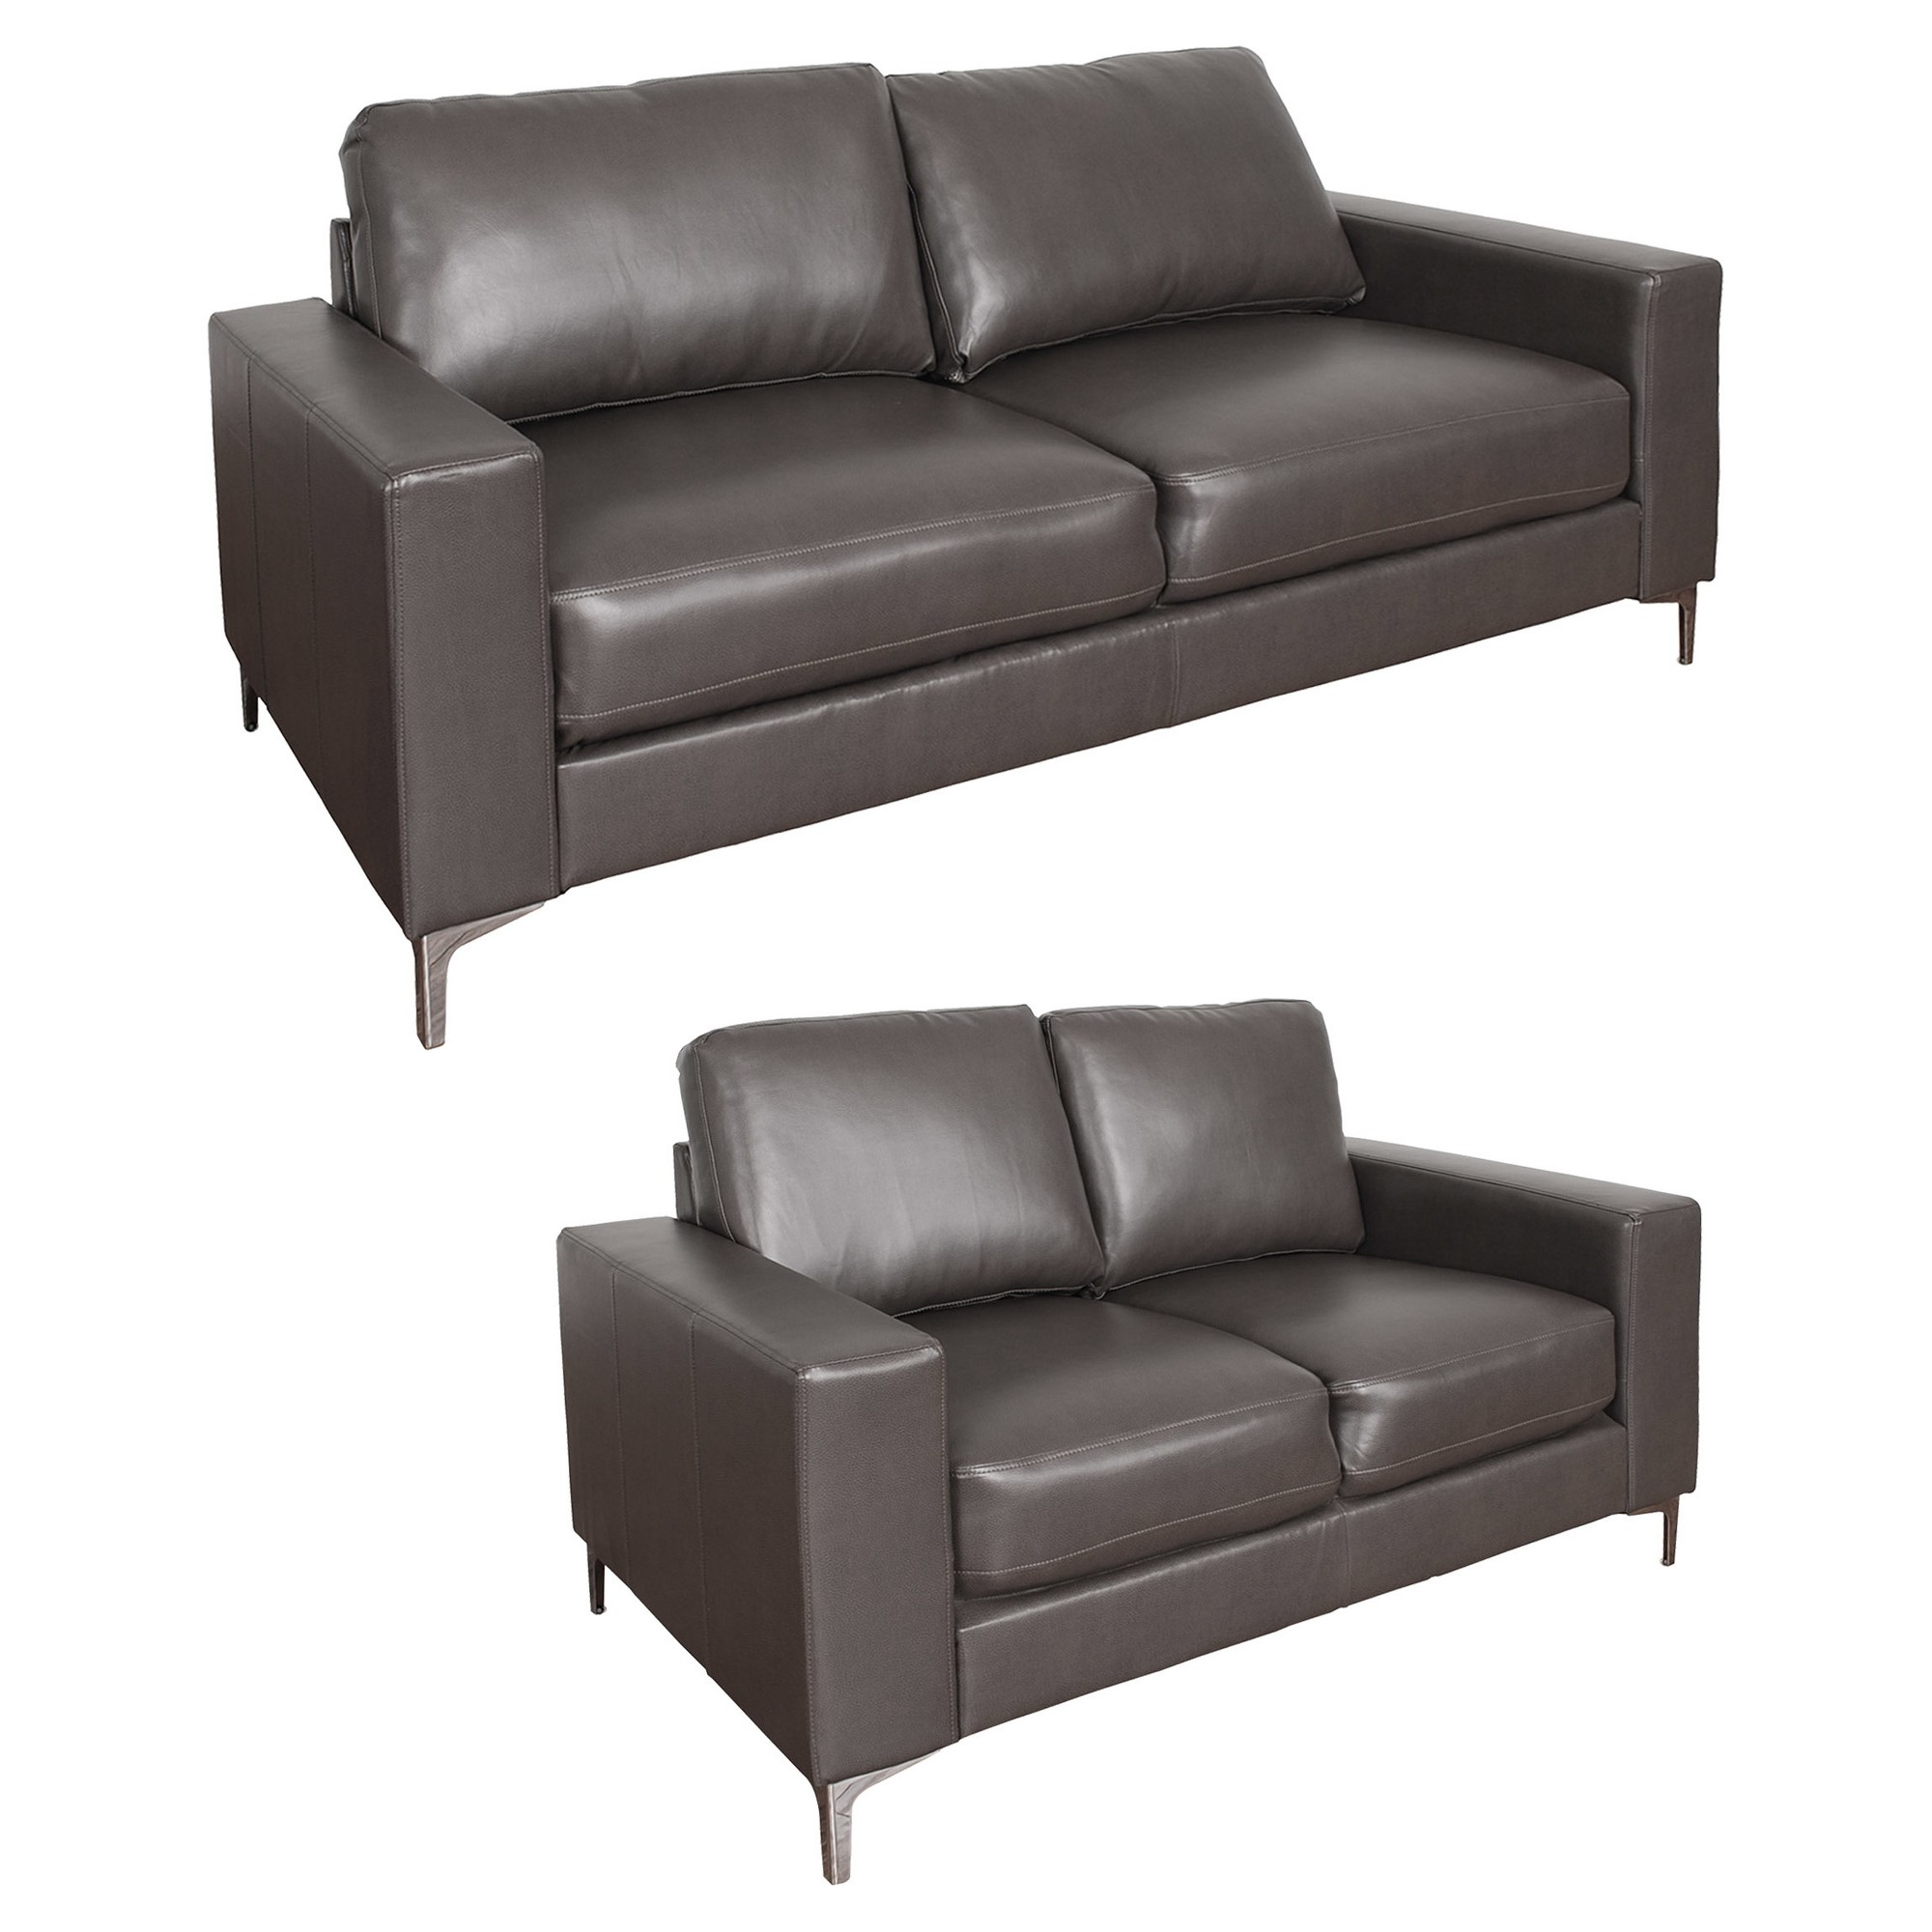 Cory 2pc Contemporary Brownish Gray Bonded Leather Sofa Set